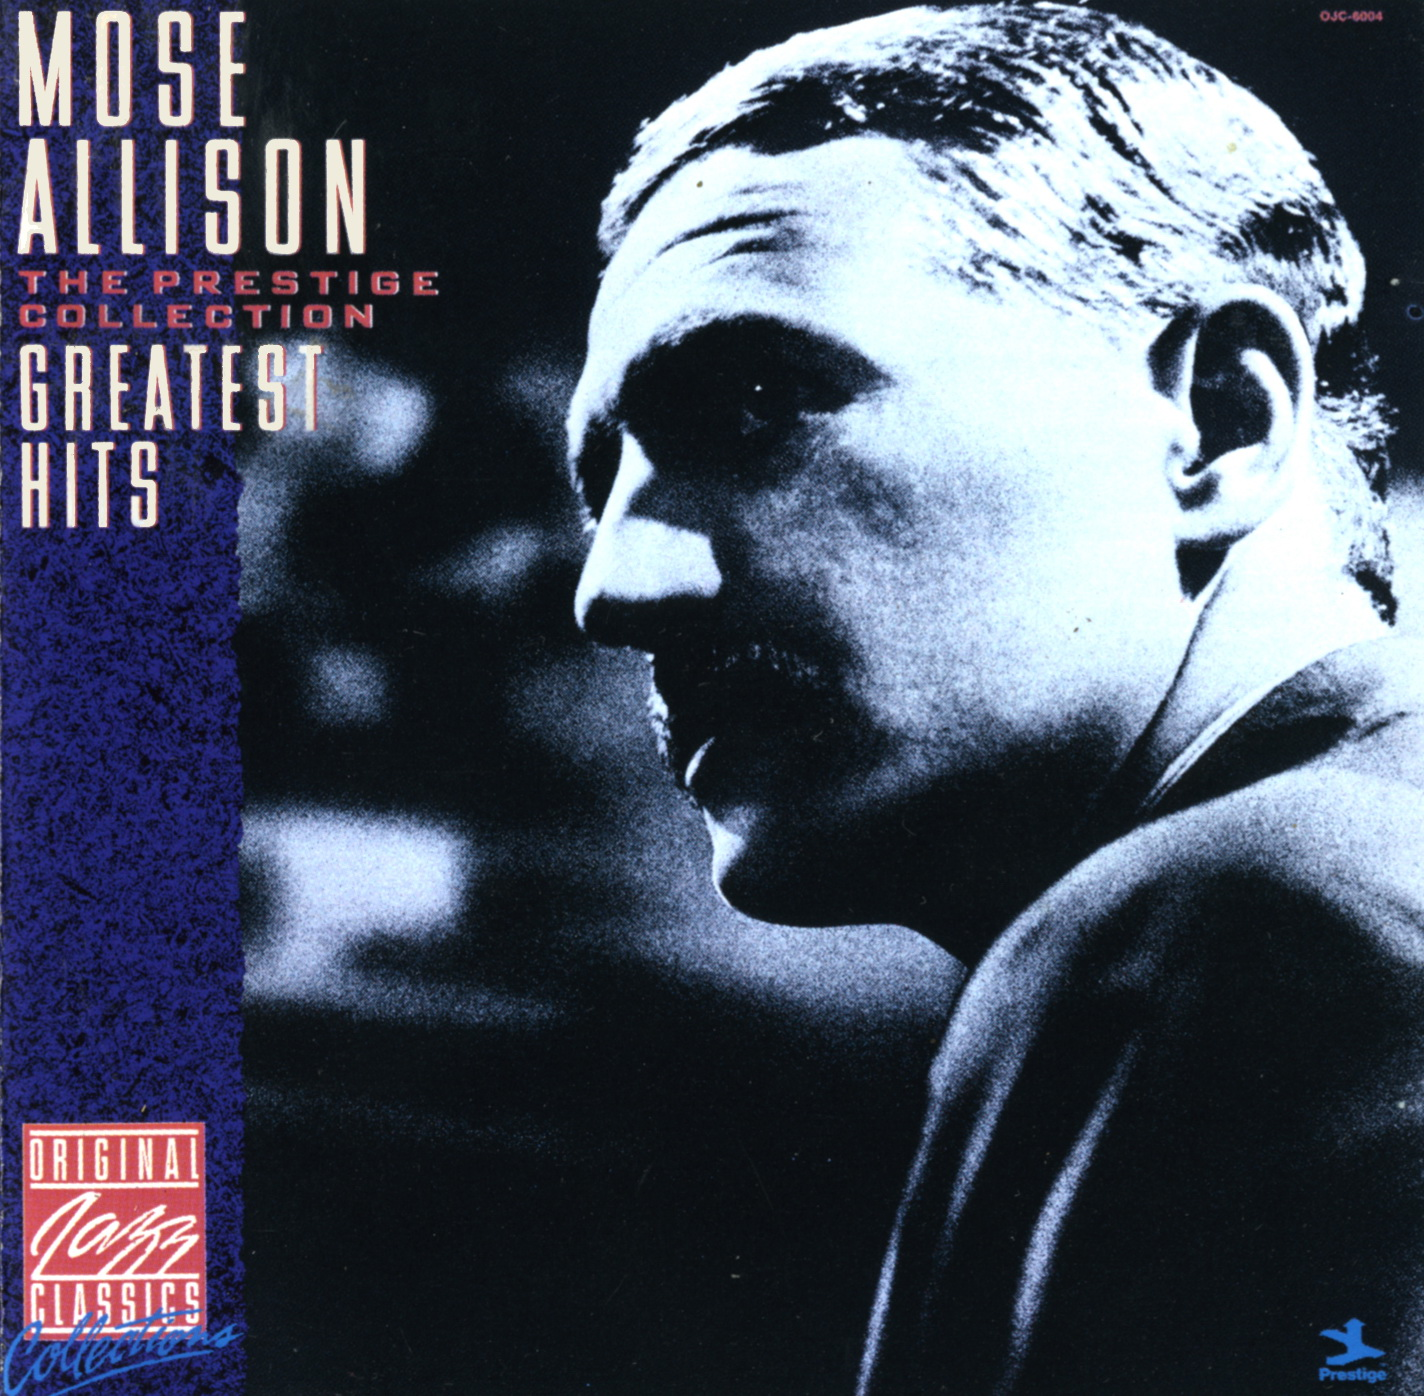 Mose Allison - Greatest Hits (1988)